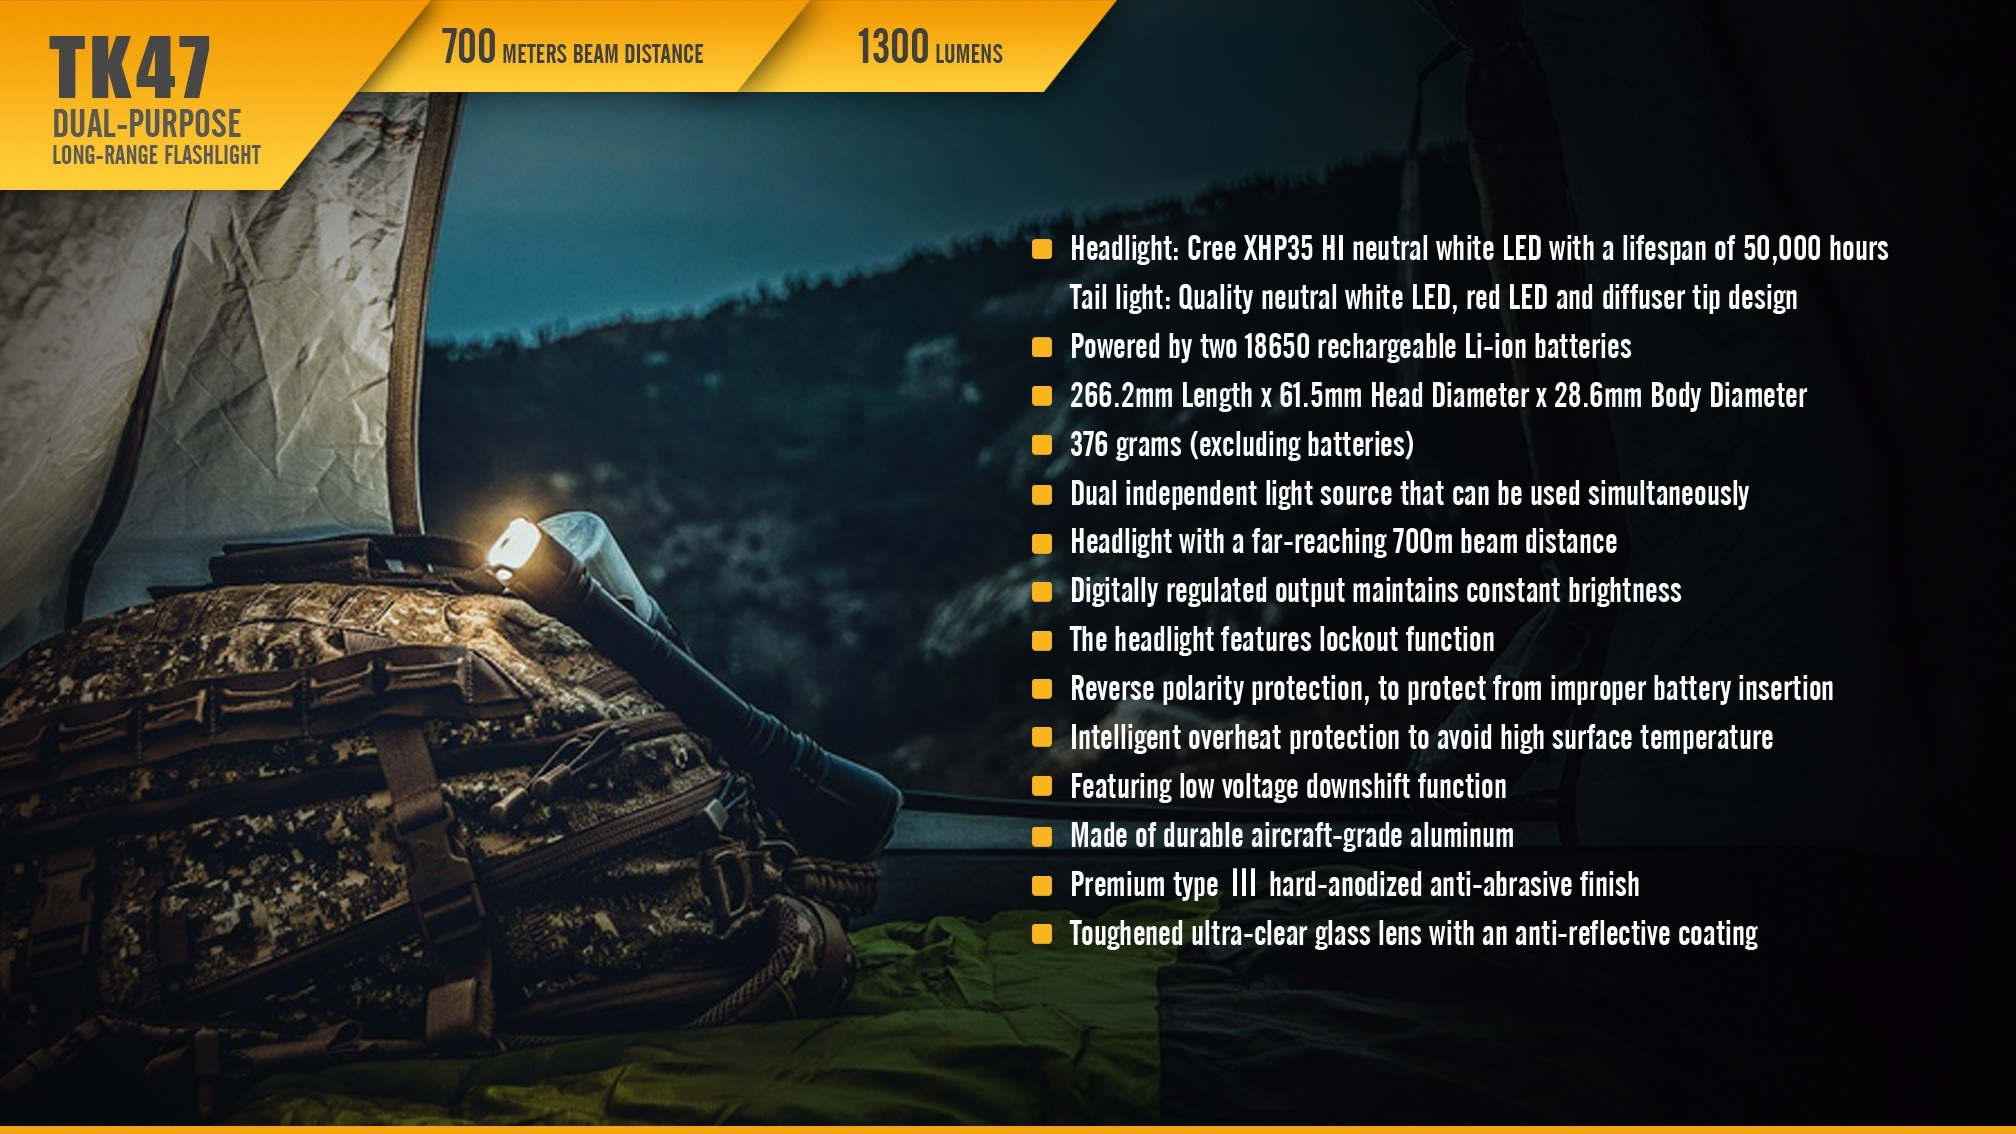 Fenix TK47 Dual-Purpose LED Flashlight Specifications